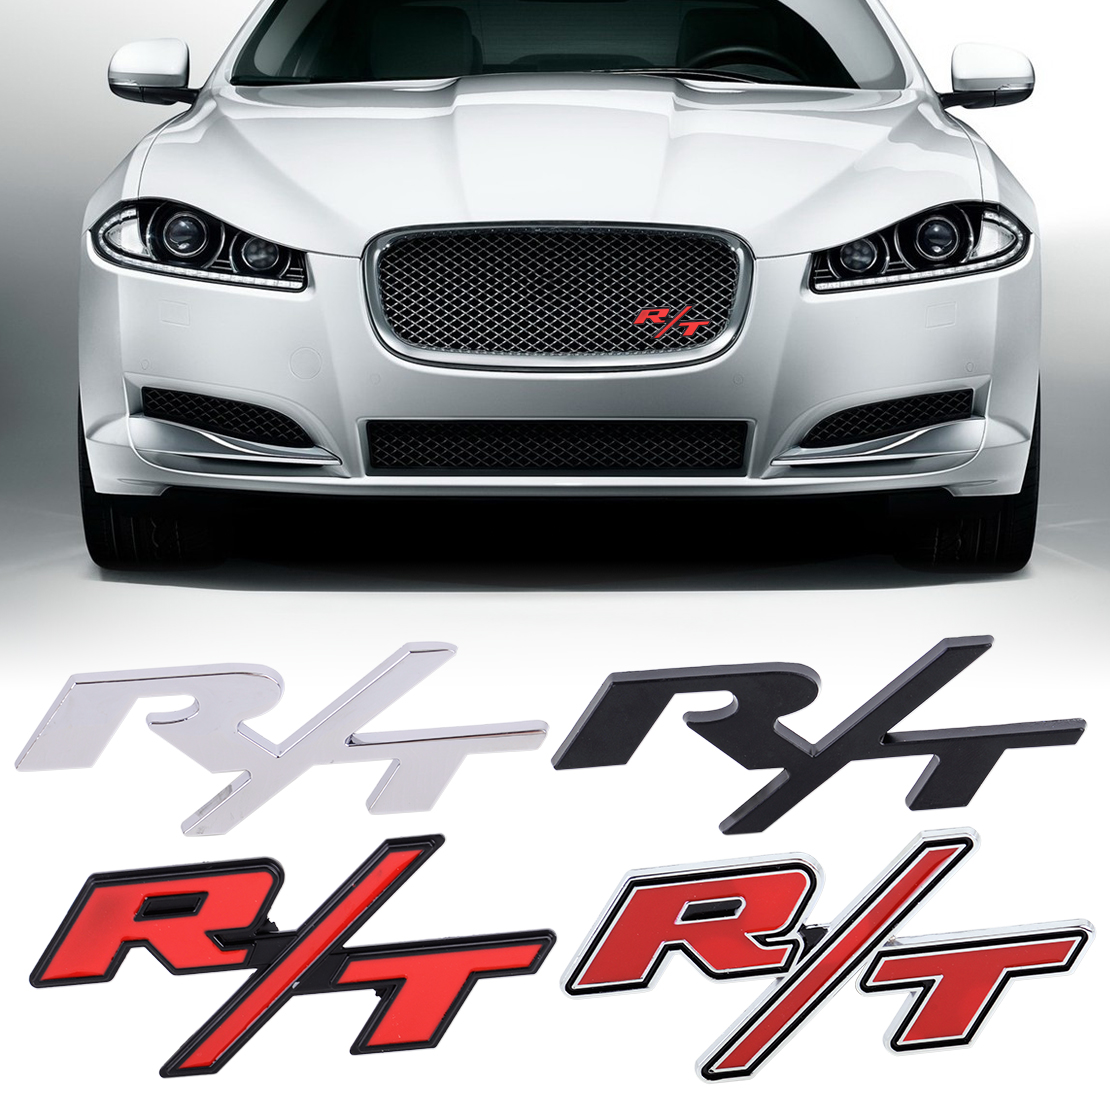 CITALL Front Grille Metal Car 3D R/T RT Logo Styling Emblem Badge Sticker with Screw Gasket Kit Fit for Chrysler Dodge Charger модель автомобиля 1 24 motormax dodge charger r t 2011